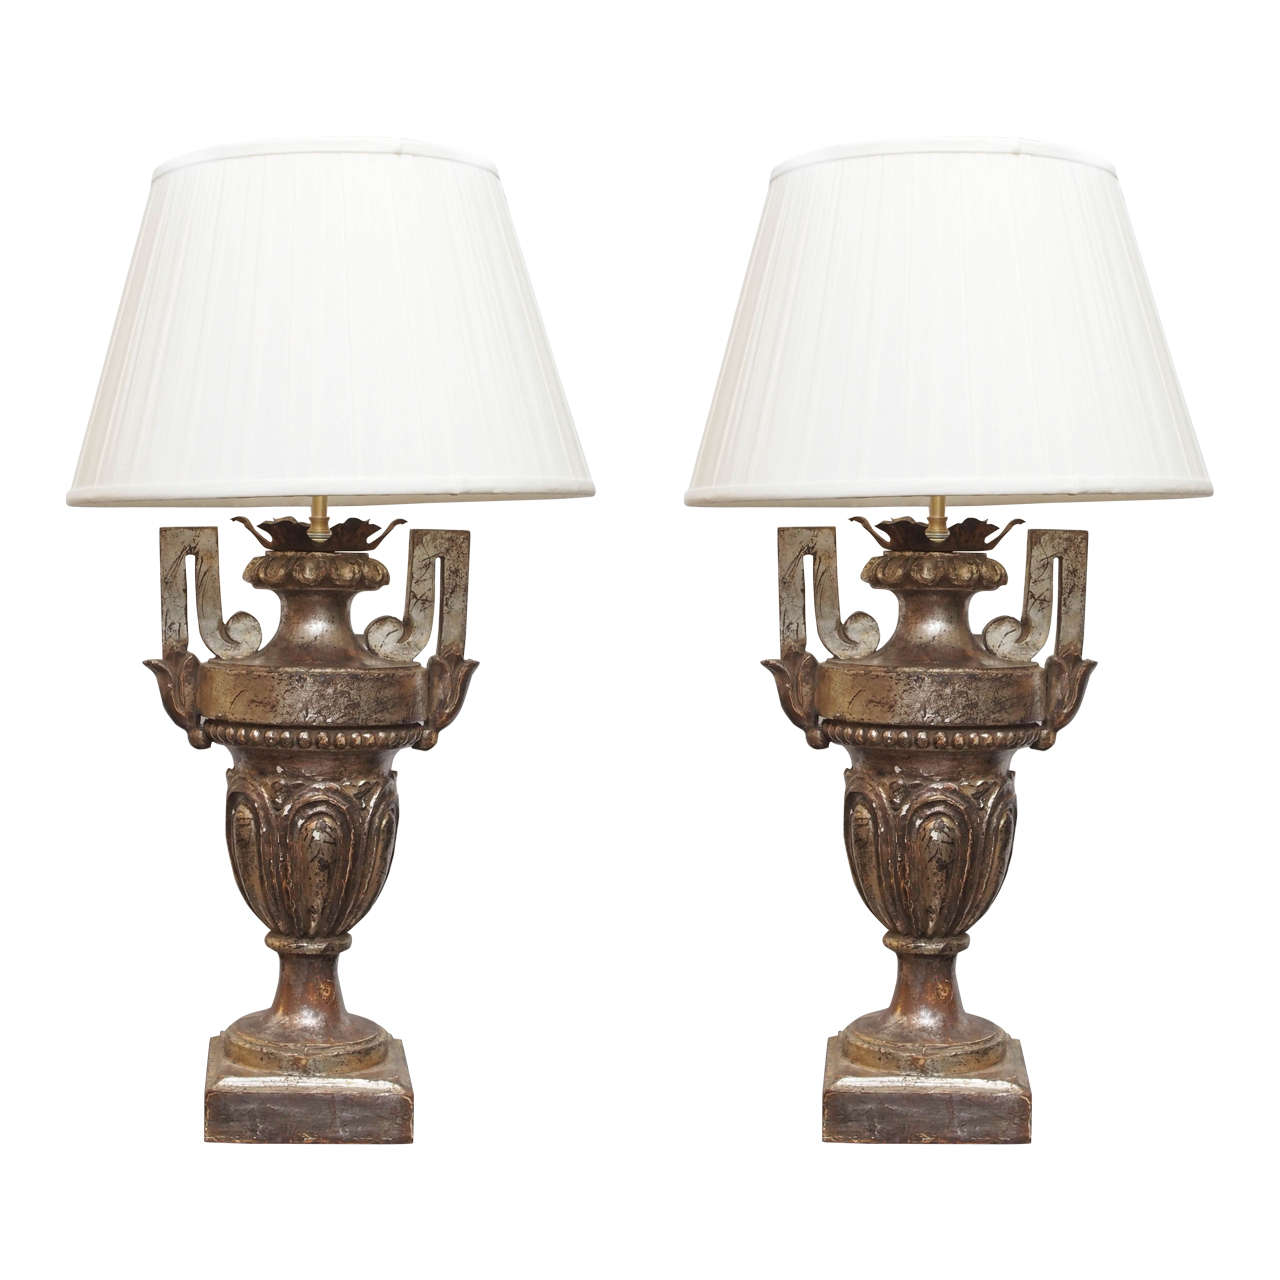 Pair of 19th Century Silver Gilt Urns now Mounted as Table Lamps